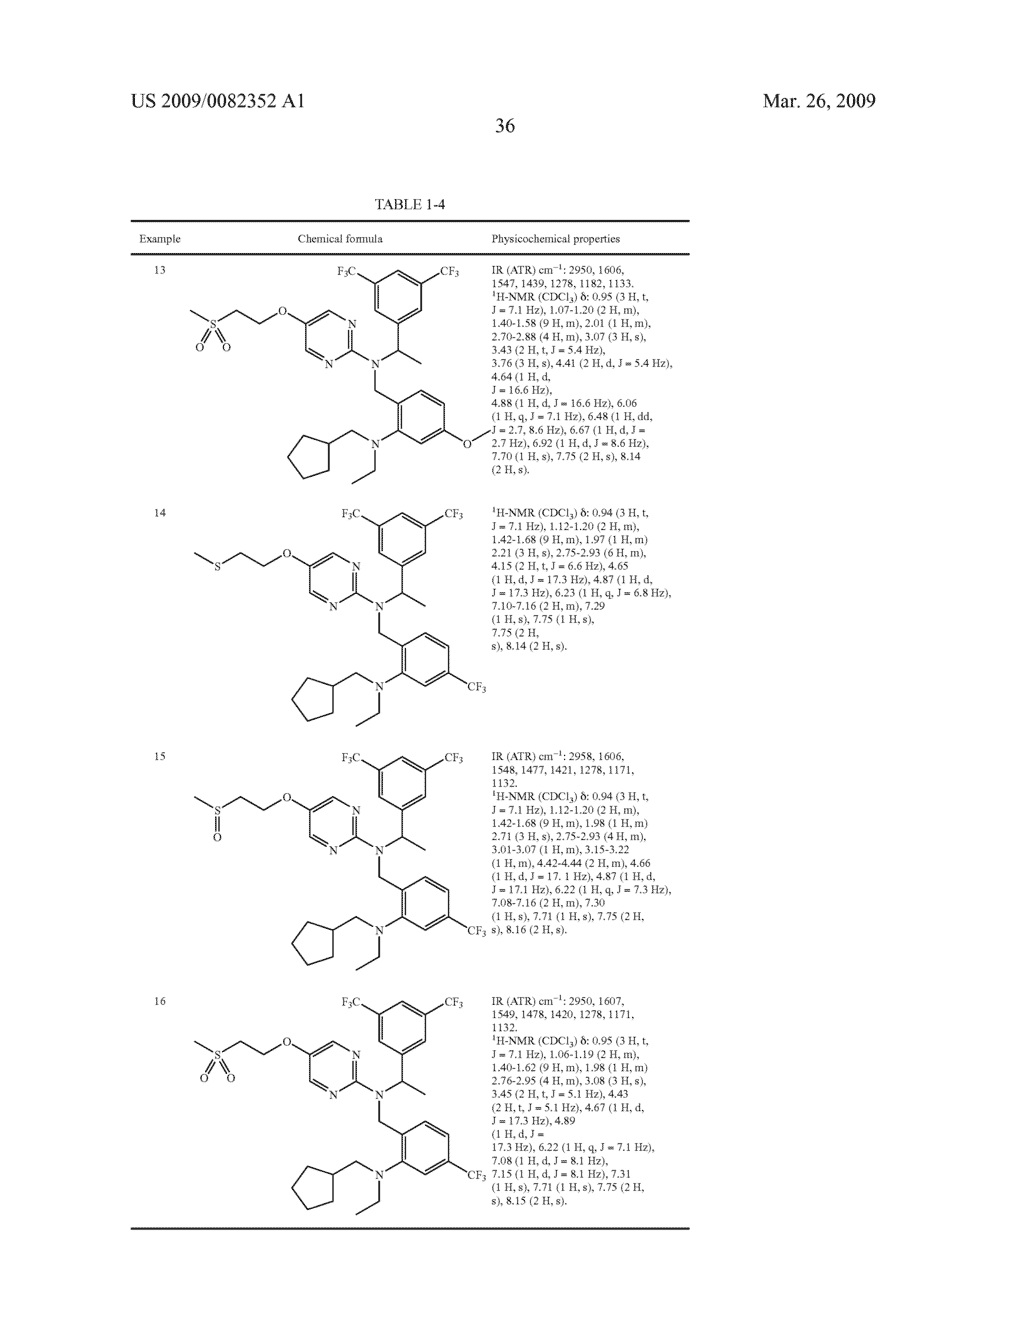 NOVEL PYRIMIDINE COMPOUND HAVING DIBENZYLAMINE STRUCTURE AND MEDICAMENT COMPRISING THE SAME - diagram, schematic, and image 38